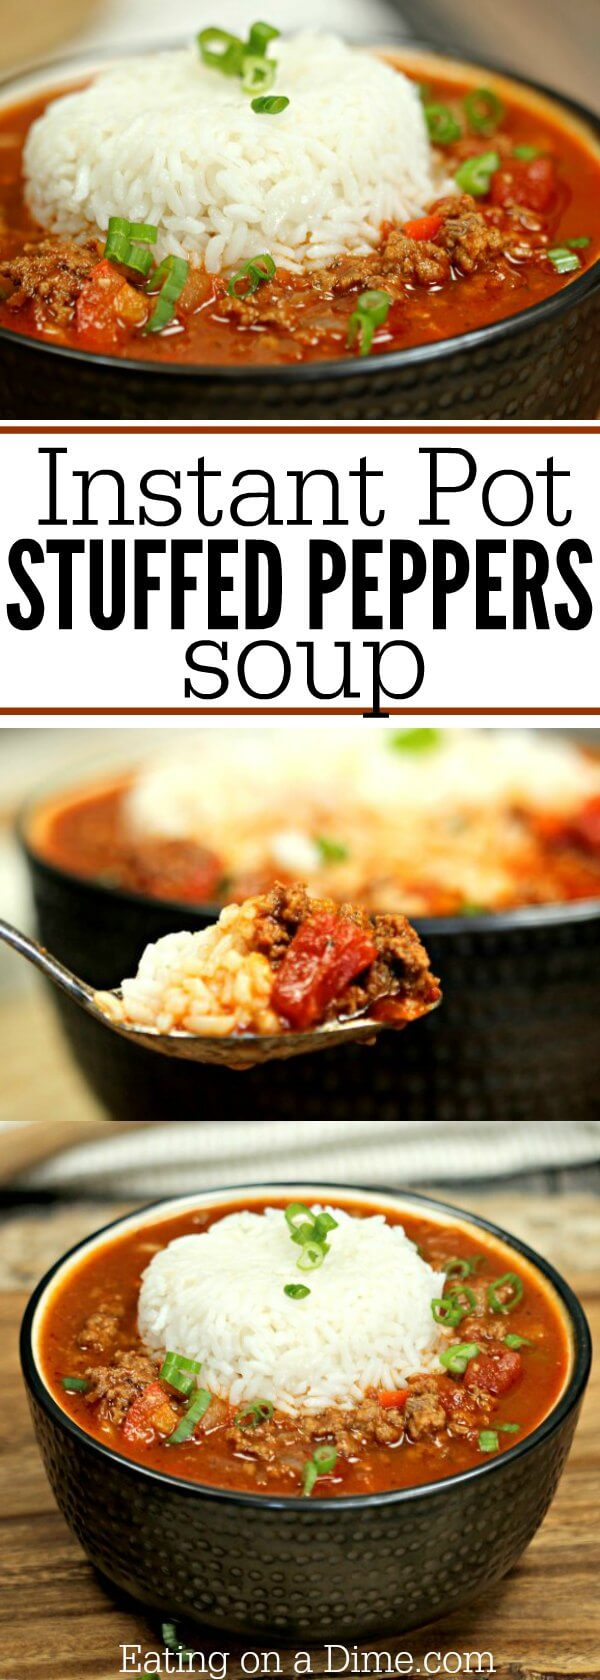 This Instant Pot Stuffed Peppers Soup Recipe is ready in under 30 minutes! But this stuffed bell peppers soup pressure cooker recipe tastes amazing!